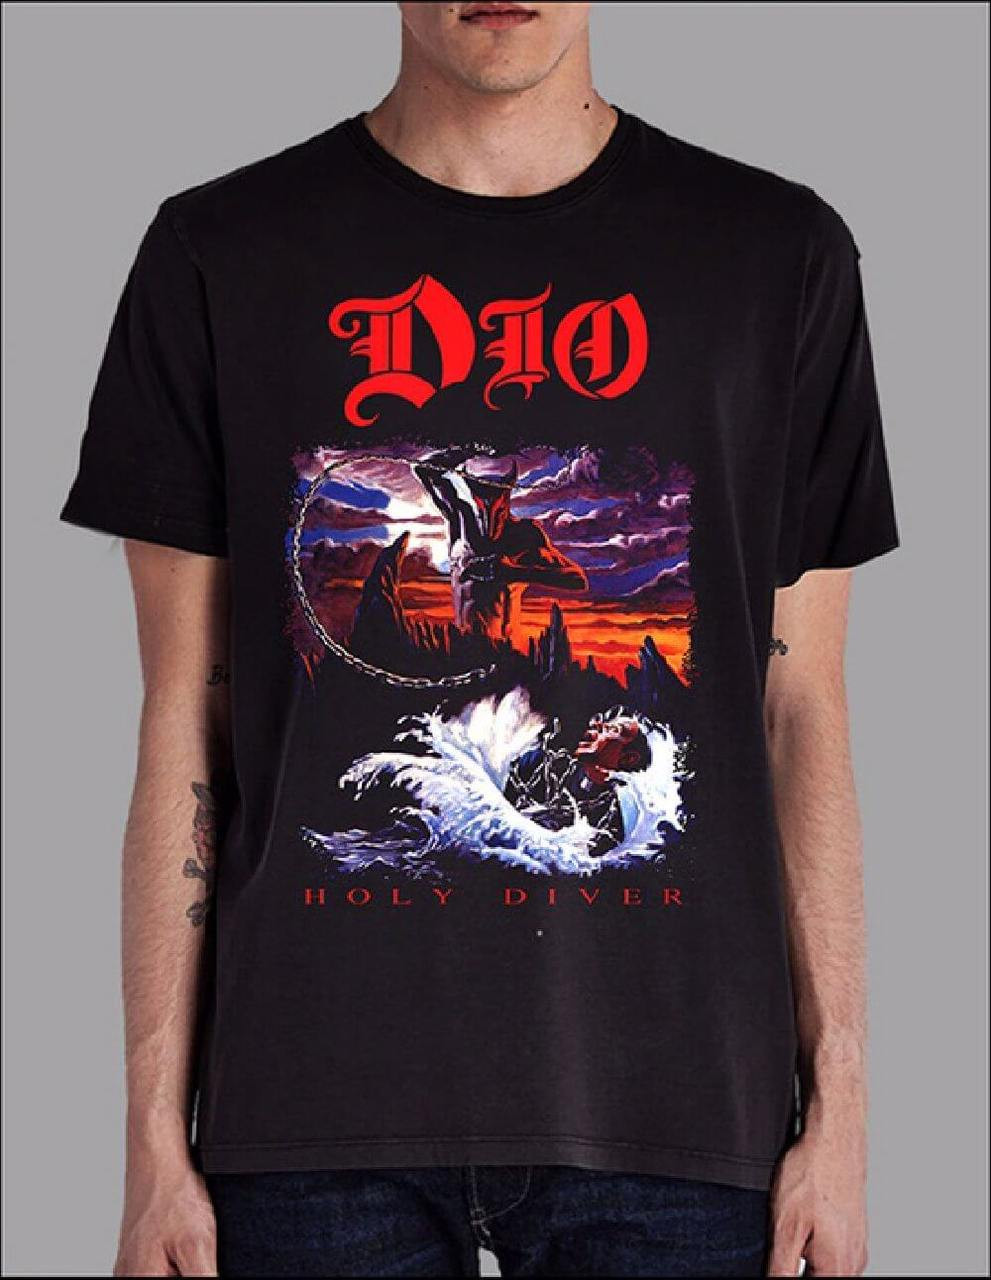 Dio T-shirt - Holy Diver Album Cover Artwork | Men's Black Shirt